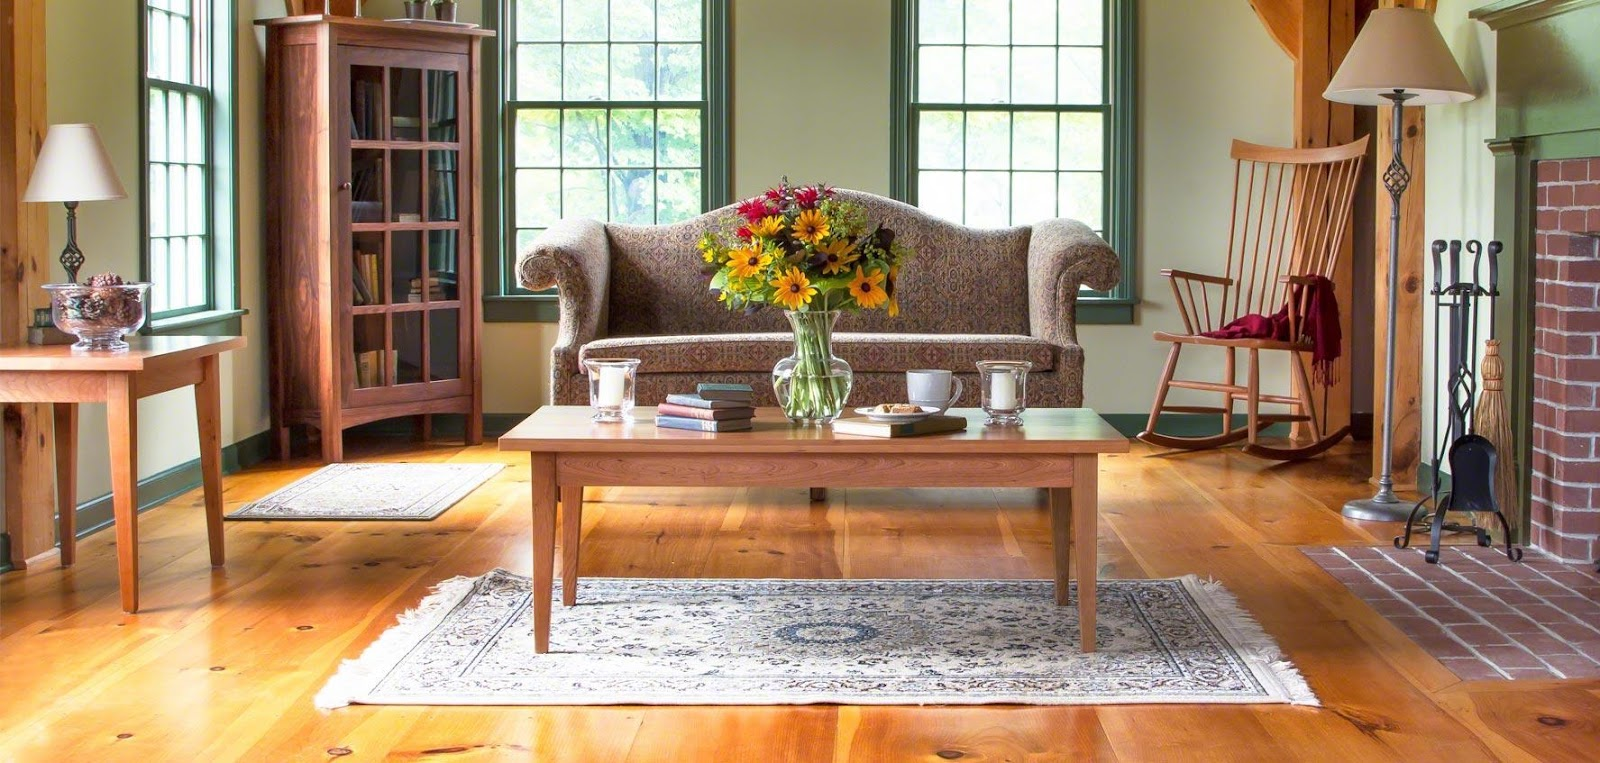 https://vermontwoodsstudios.com/images/living-room-furniture-category-image-1.jpg